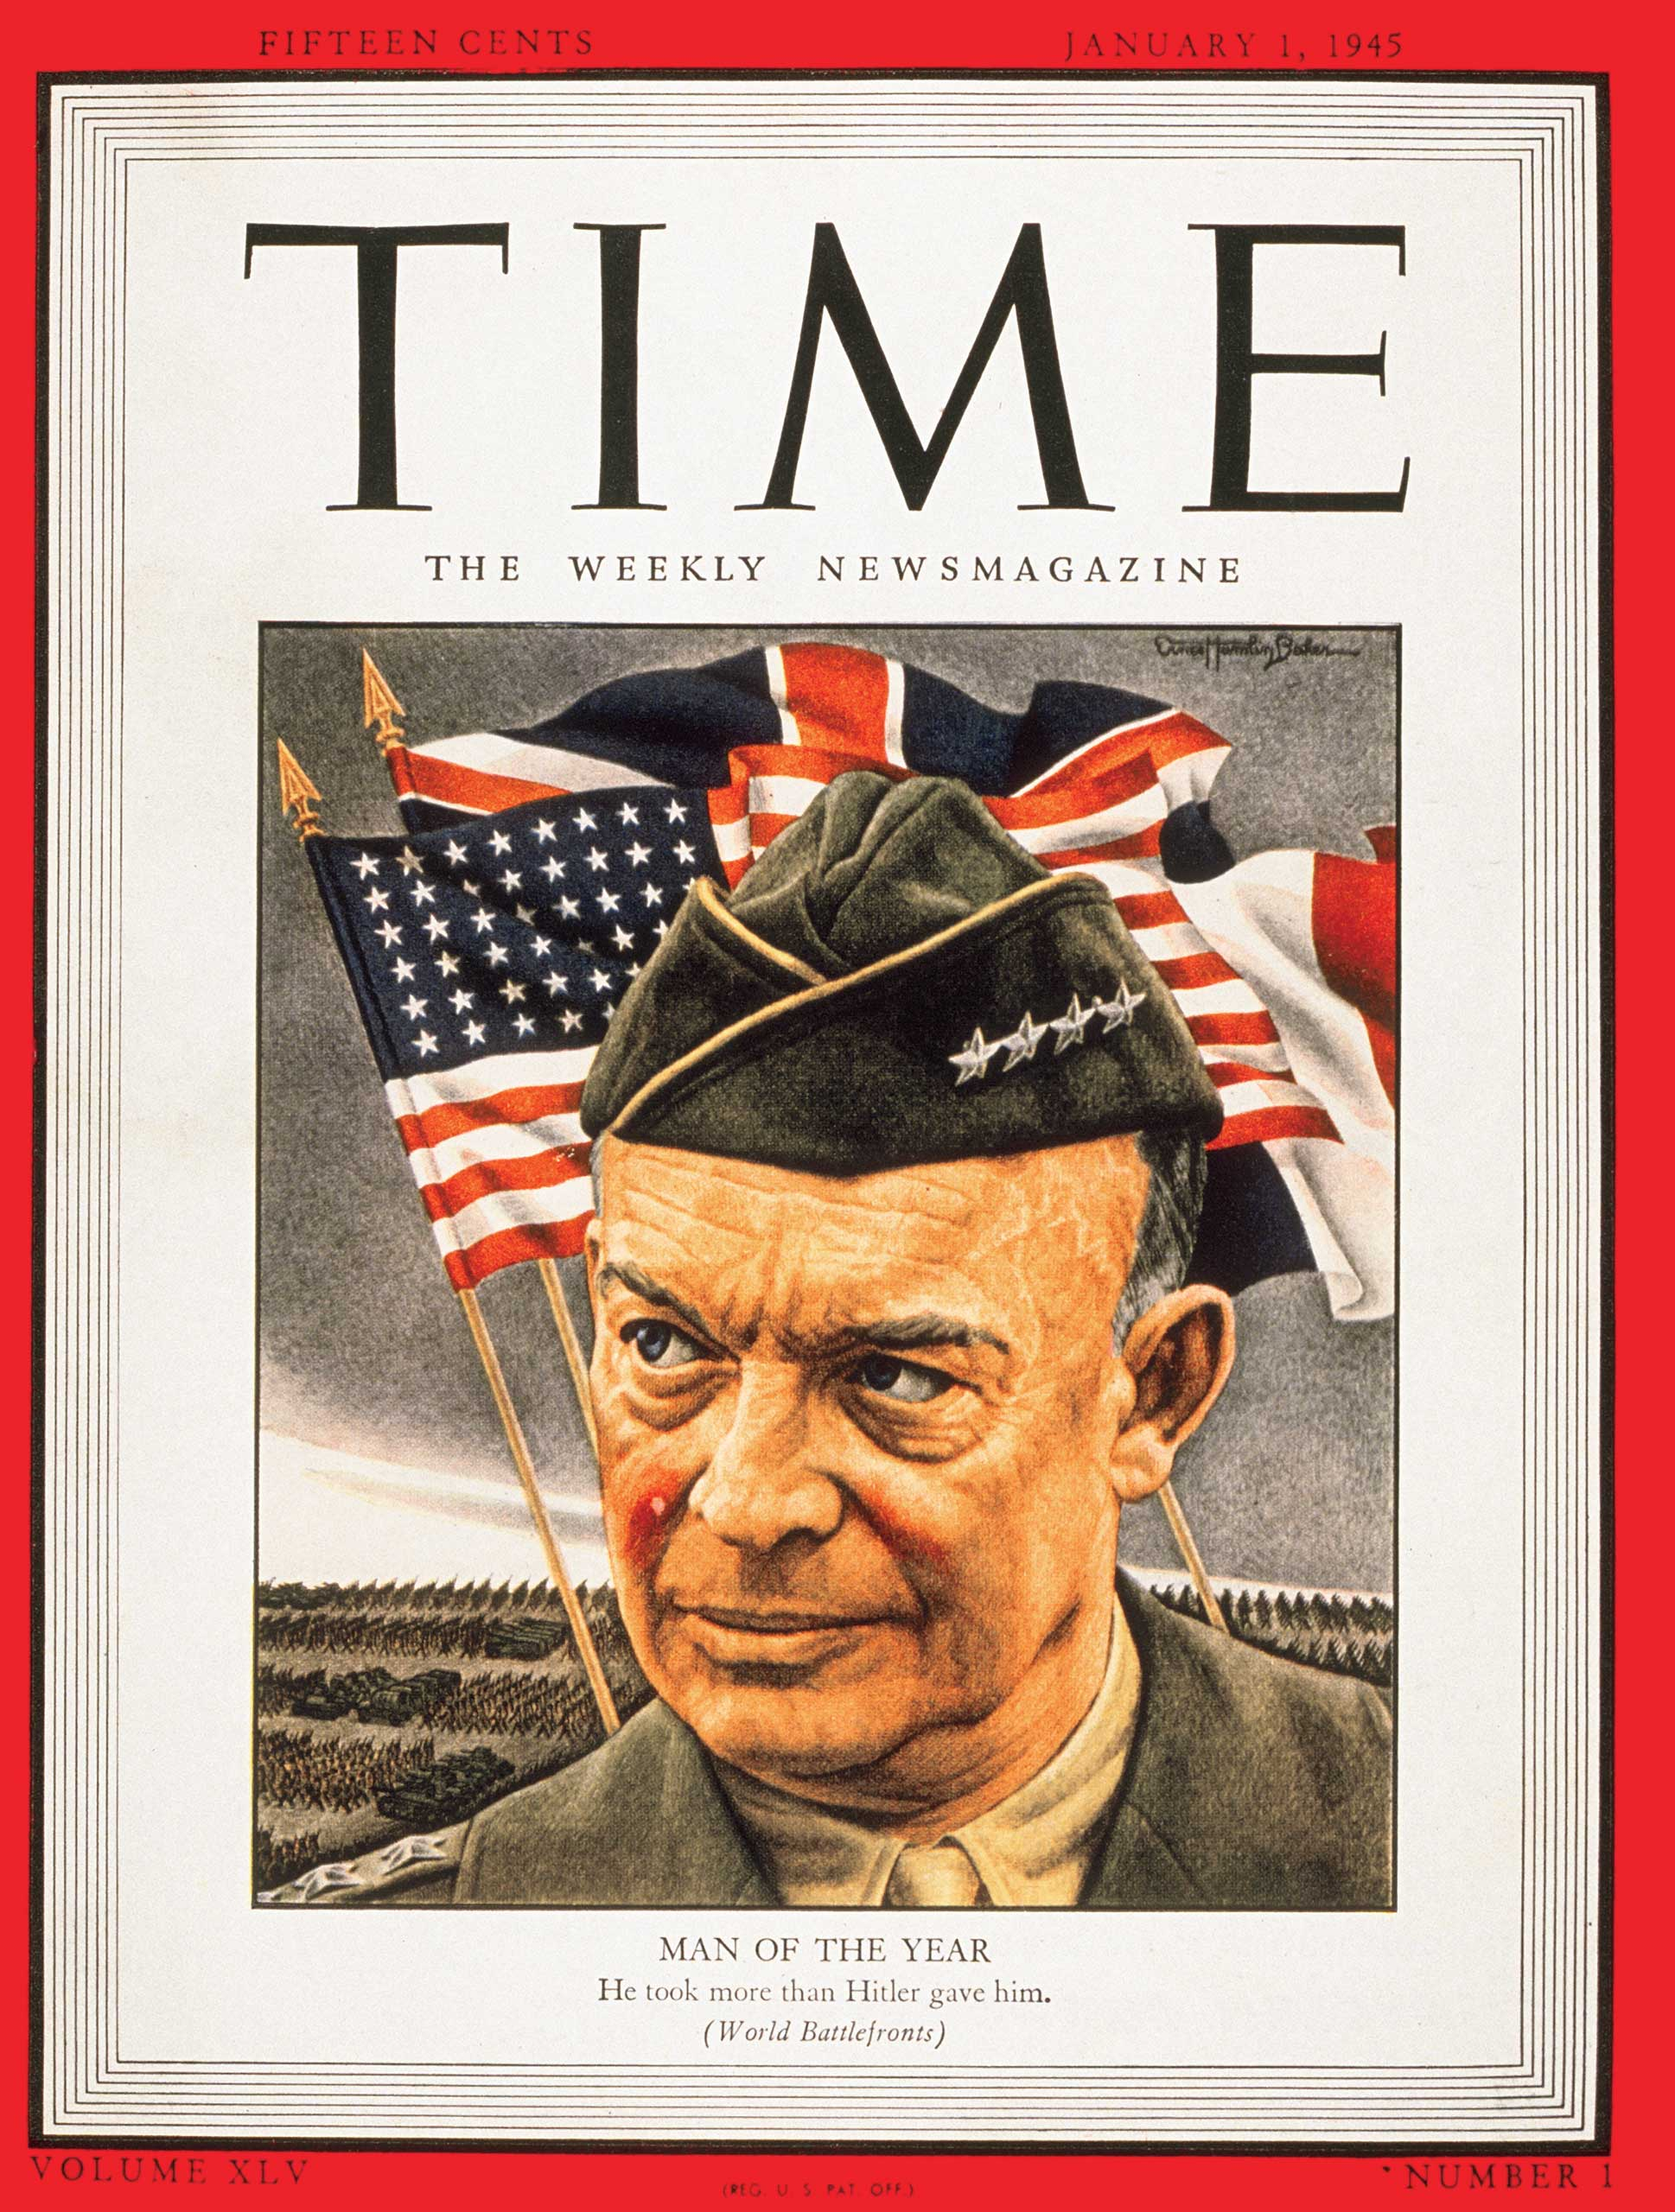 1944: Dwight D. Eisenhower